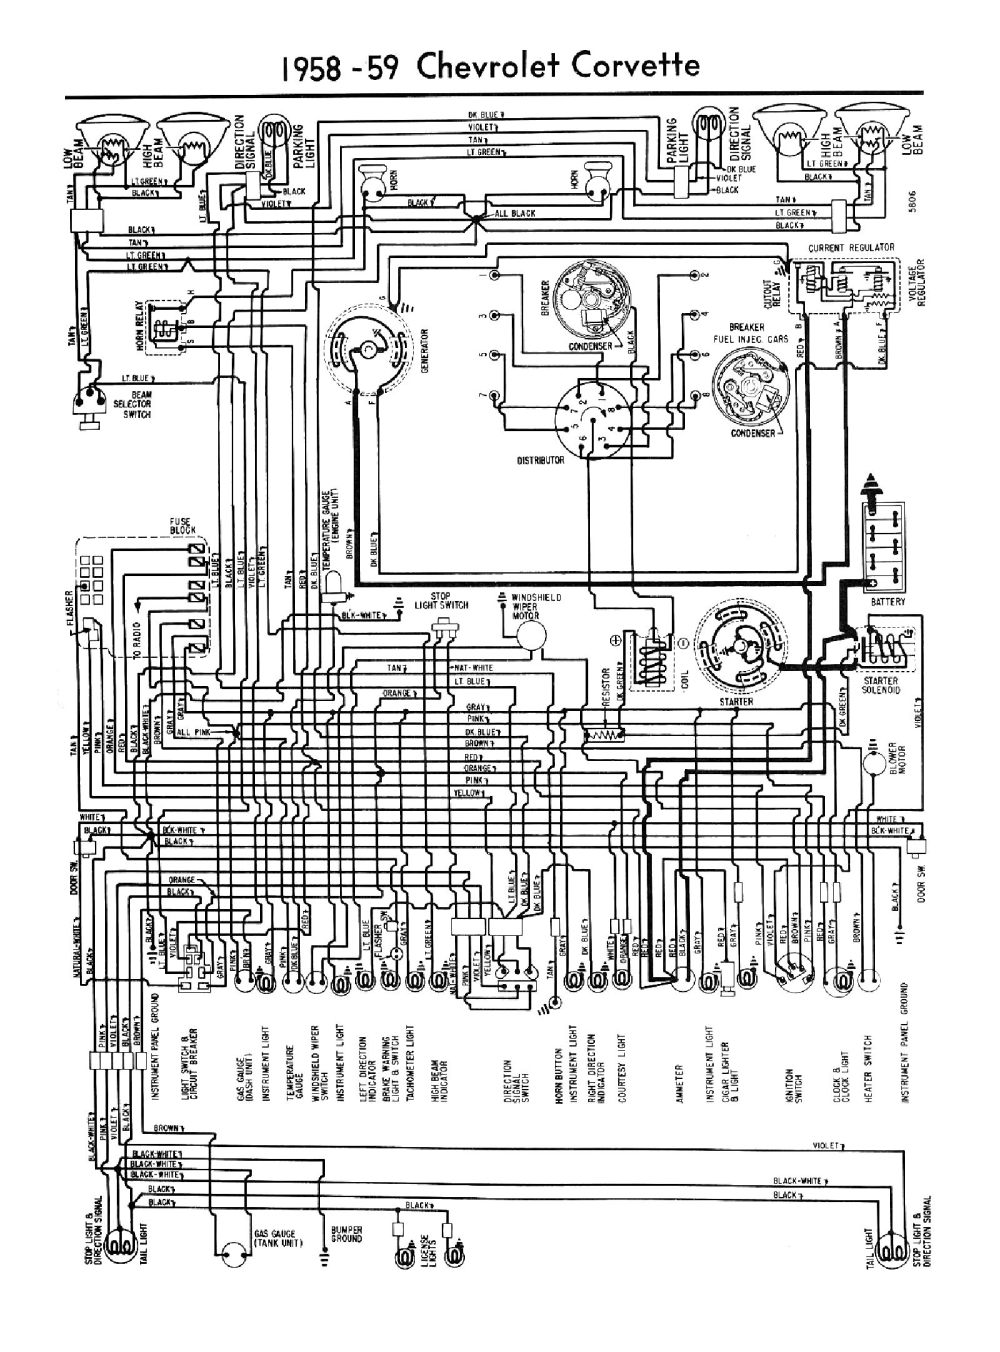 medium resolution of 53 buick wiring diagram free picture schematic wiring diagrams buick fuel system diagram 53 buick wiring diagram